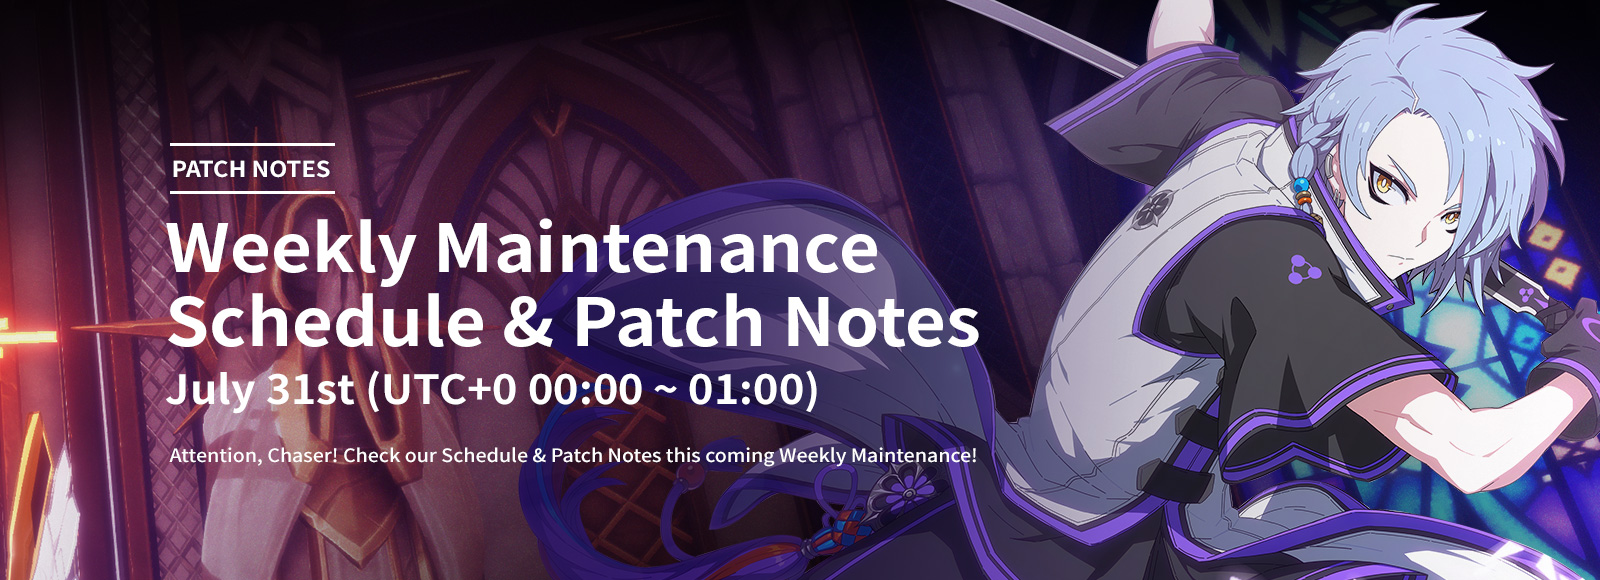 July 31st Weekly Maintenance Schedule & Patch Notes